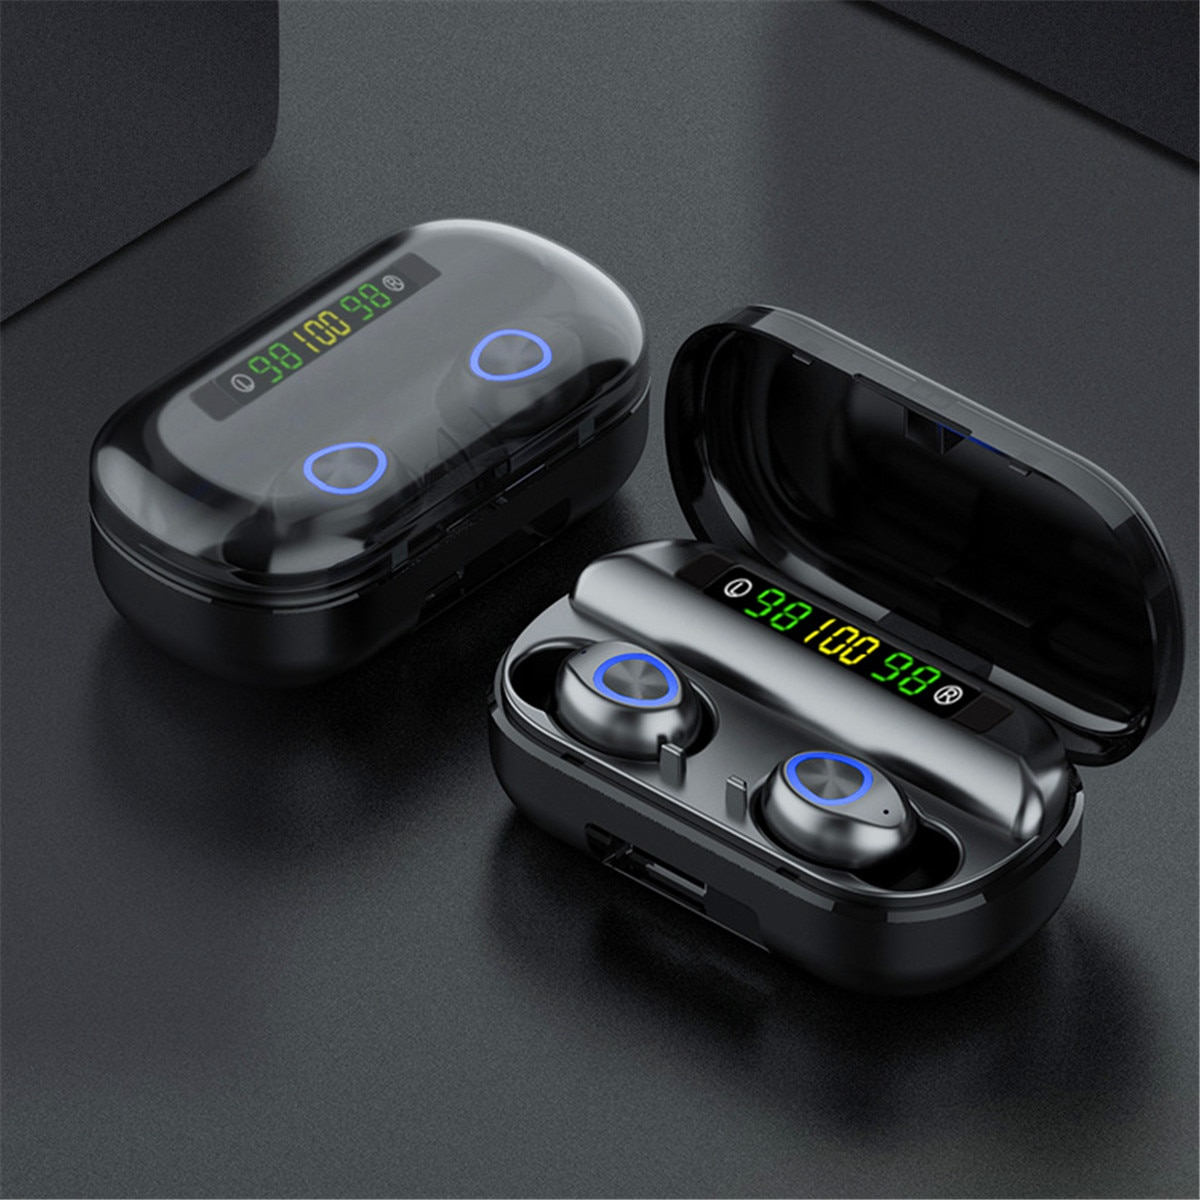 TWS True Wireless Earbuds Bluetooth V5.0 4000mAh Waterproof Active Noise-Cancellation 1